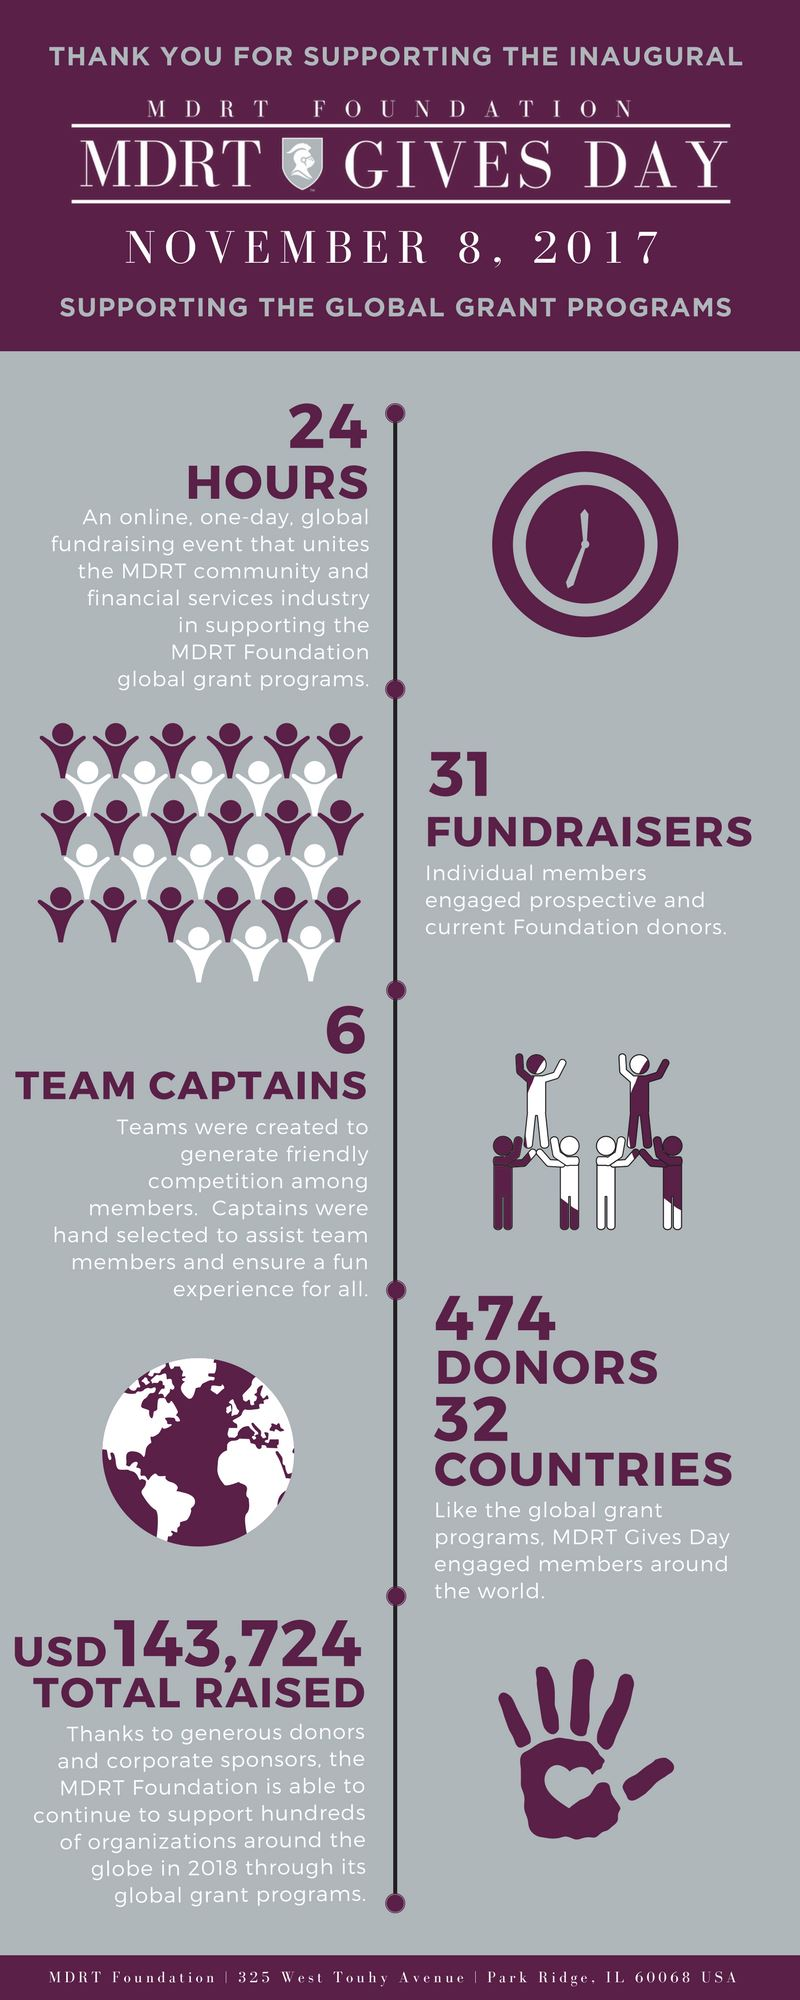 2027 MDRT Gives Day Infographic